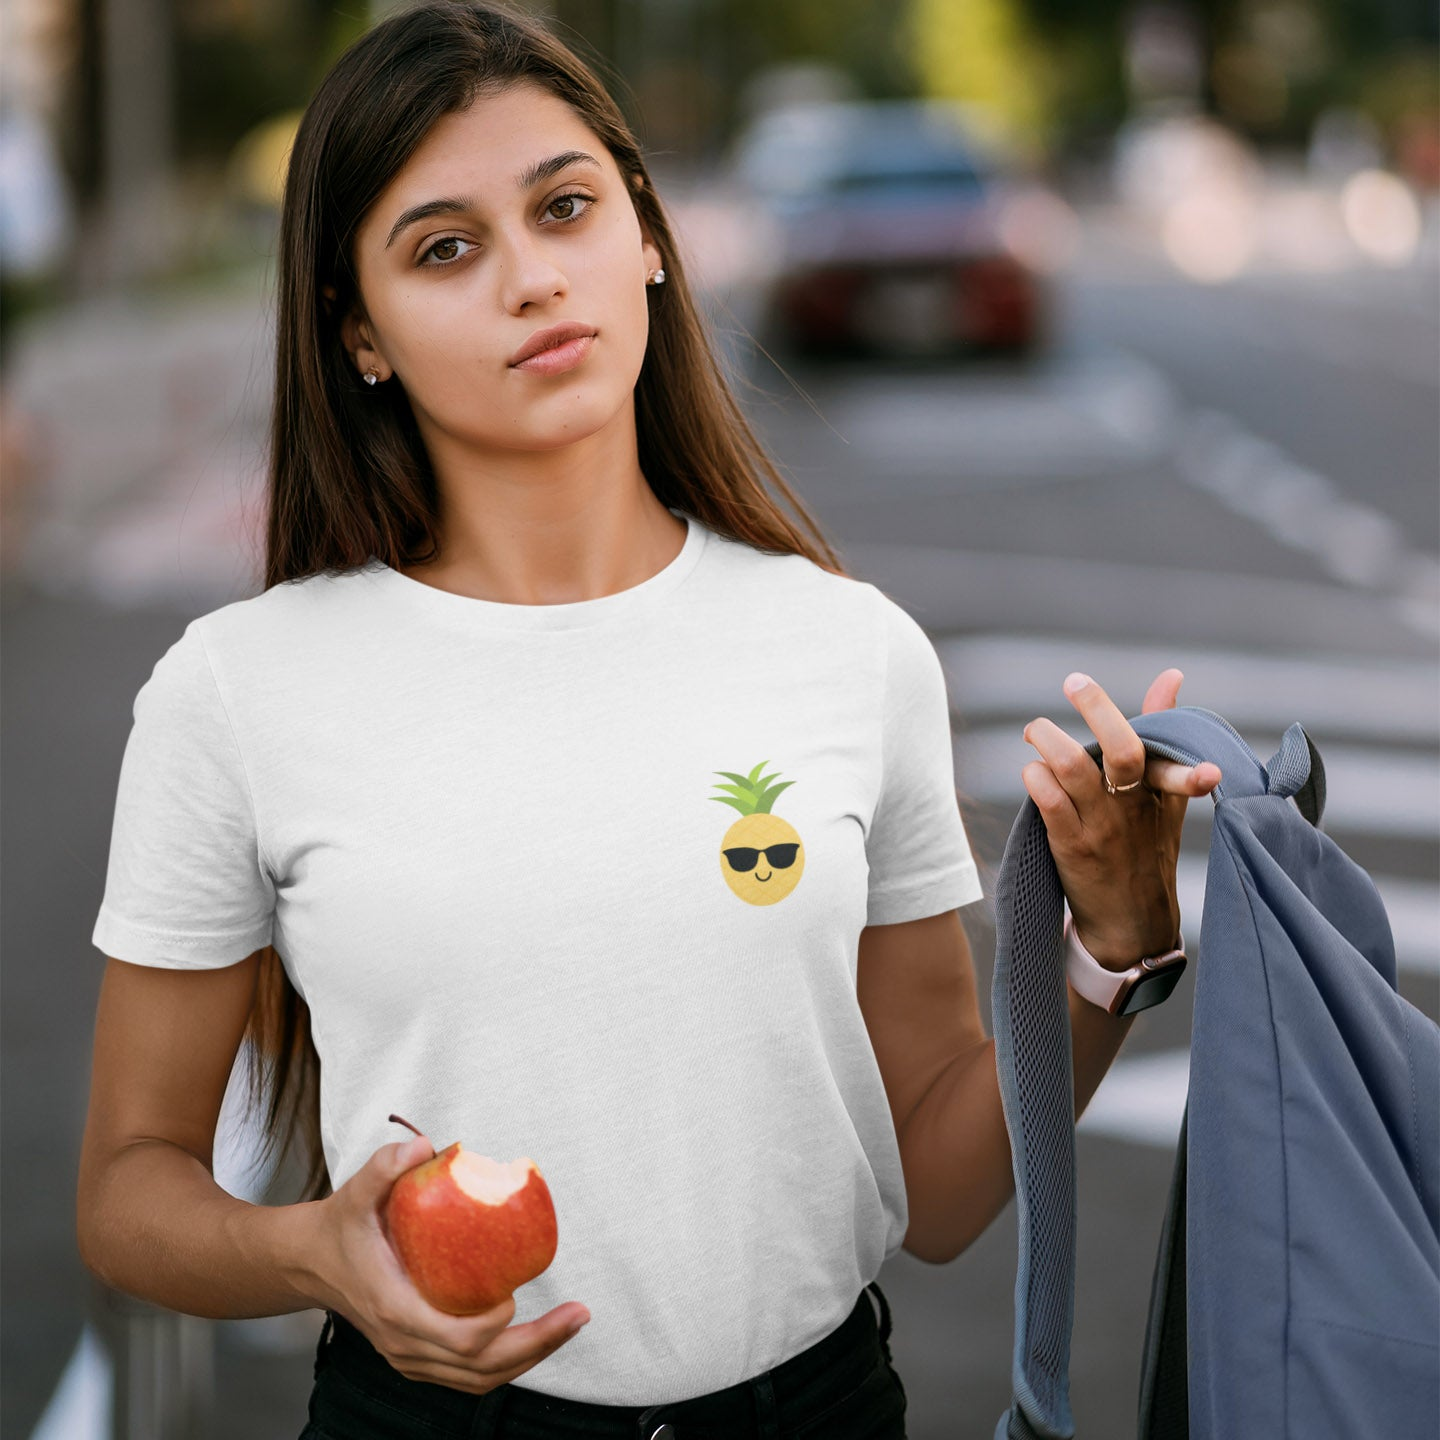 The Pineapple Everything™ Women's Tee 2.0 (Original Logo) - The Pineapple Everything